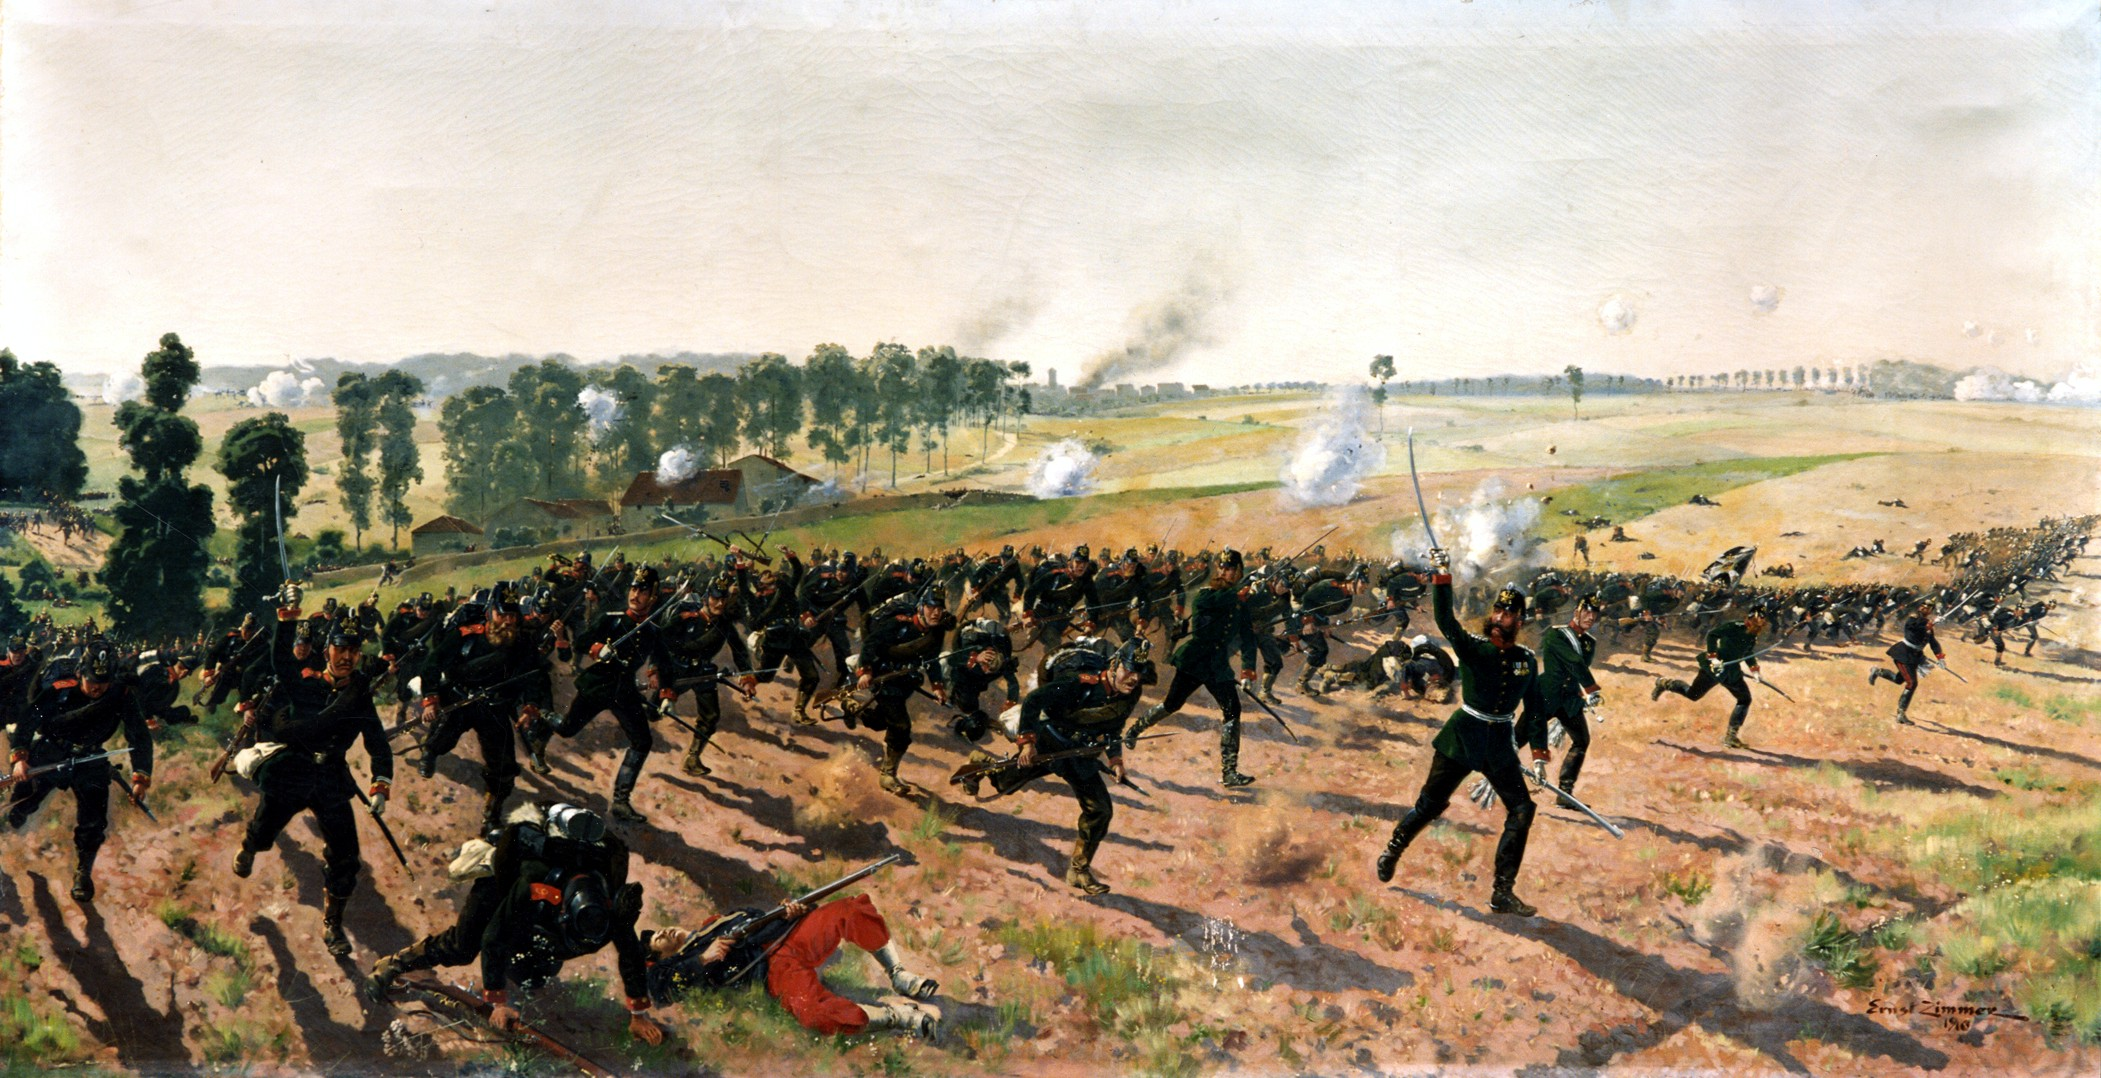 an analysis of the topic of warfare of franco prussian war The franco-prussian war marked the end of the influence of france over germany get a detailed analysis of the war in the following essay.